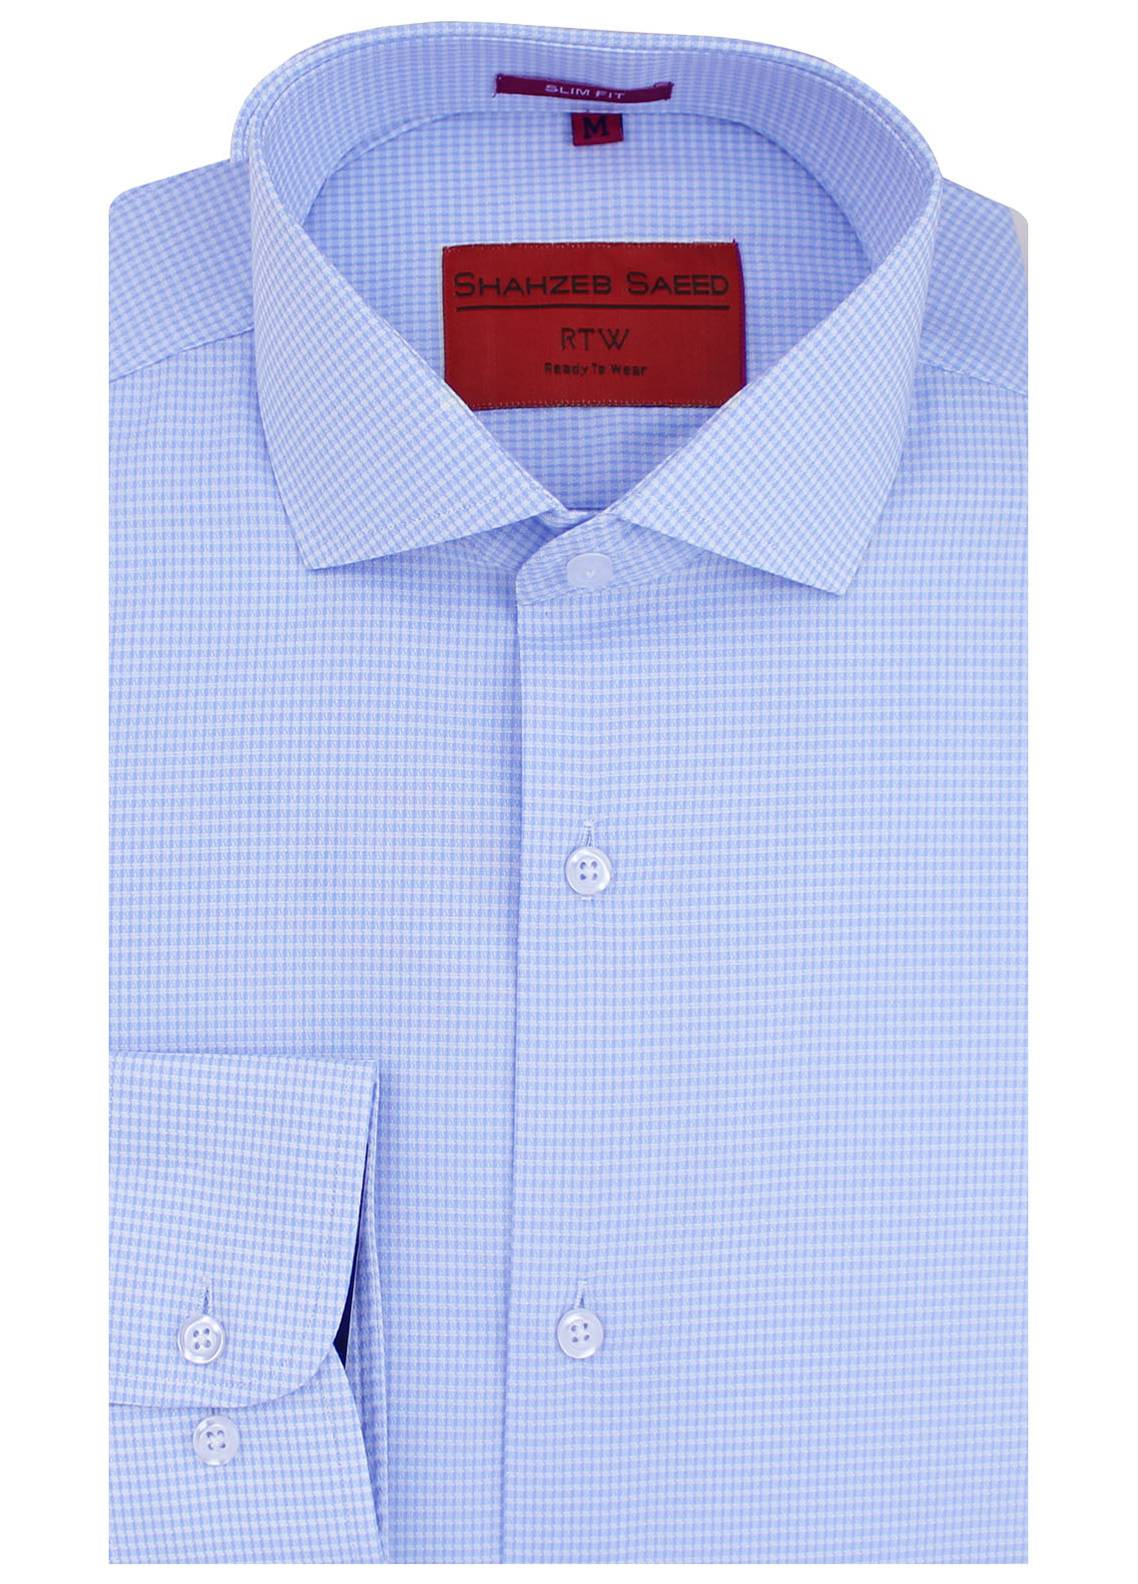 Shahzeb Saeed Cotton Formal Shirts for Men - Sky Blue RTW-1469